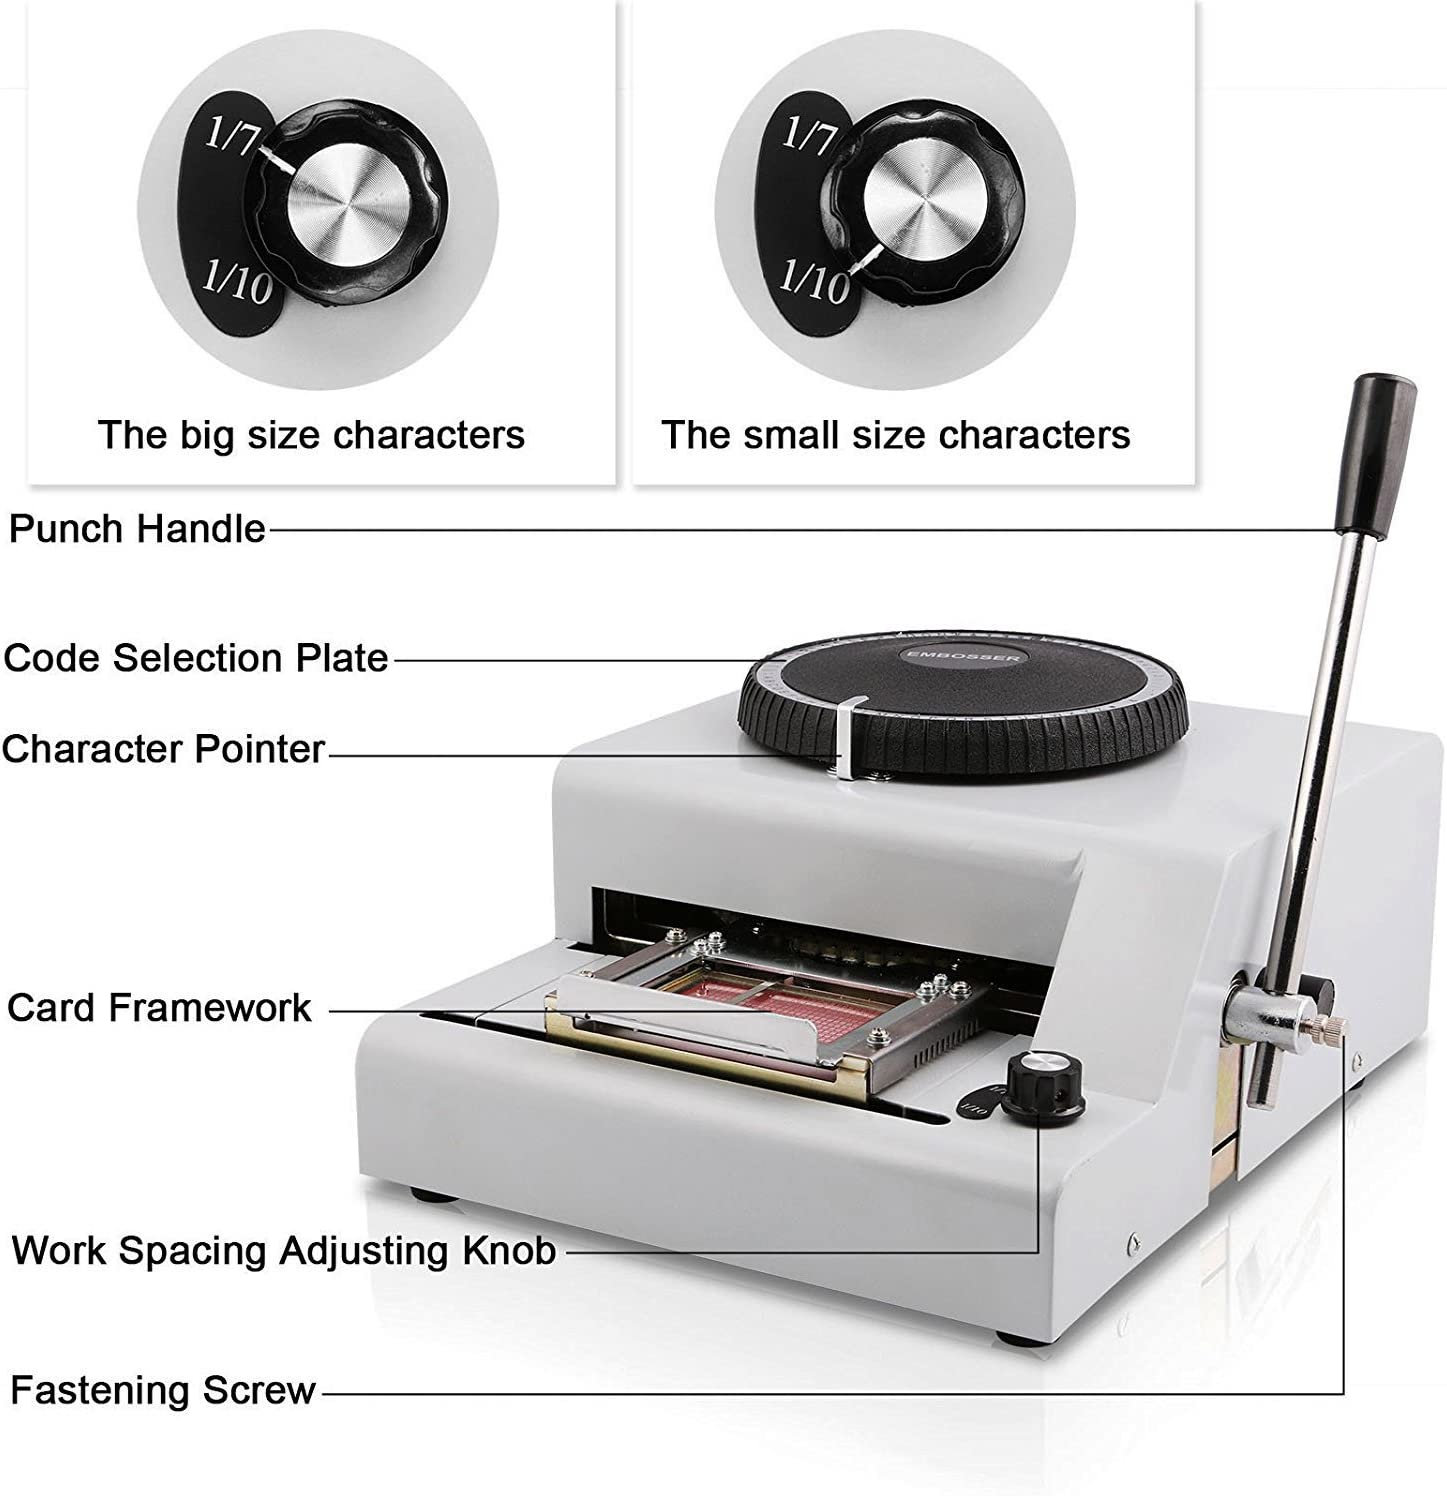 CARESHINE 72 Character Manual Embossing Machine PVC Card Embosser for VIP Card Club Card Printing Ship from Canada 2-5 Days Delivery